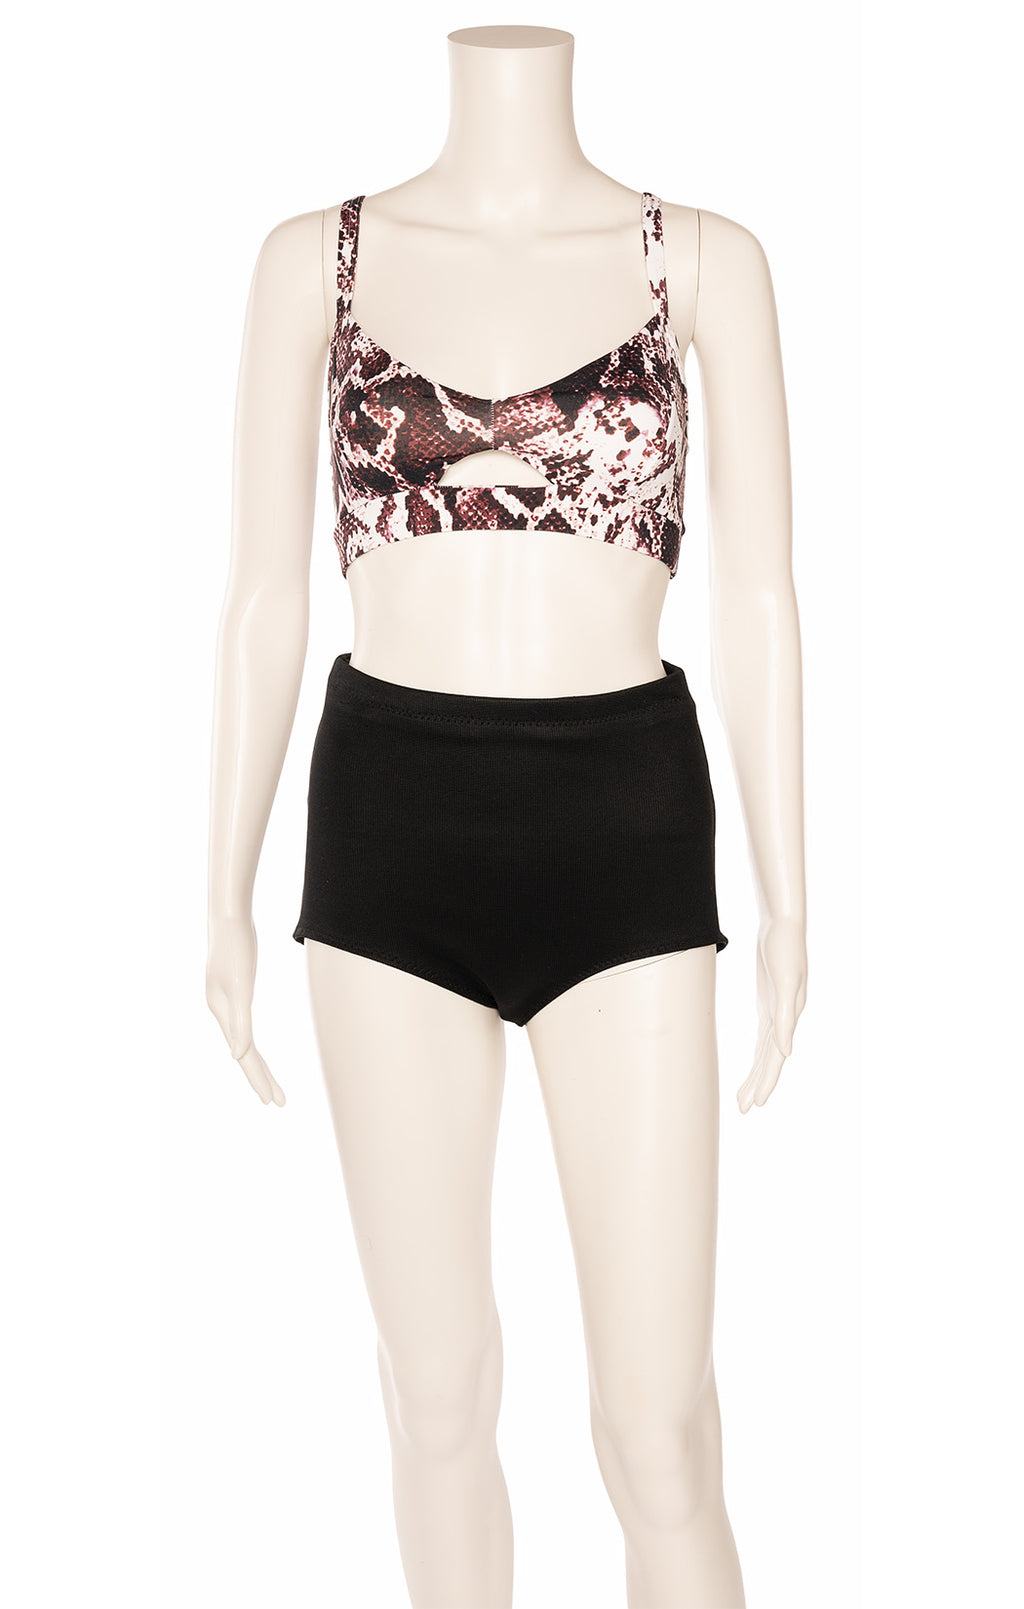 Burgundy and white snakeskin print jogging bra